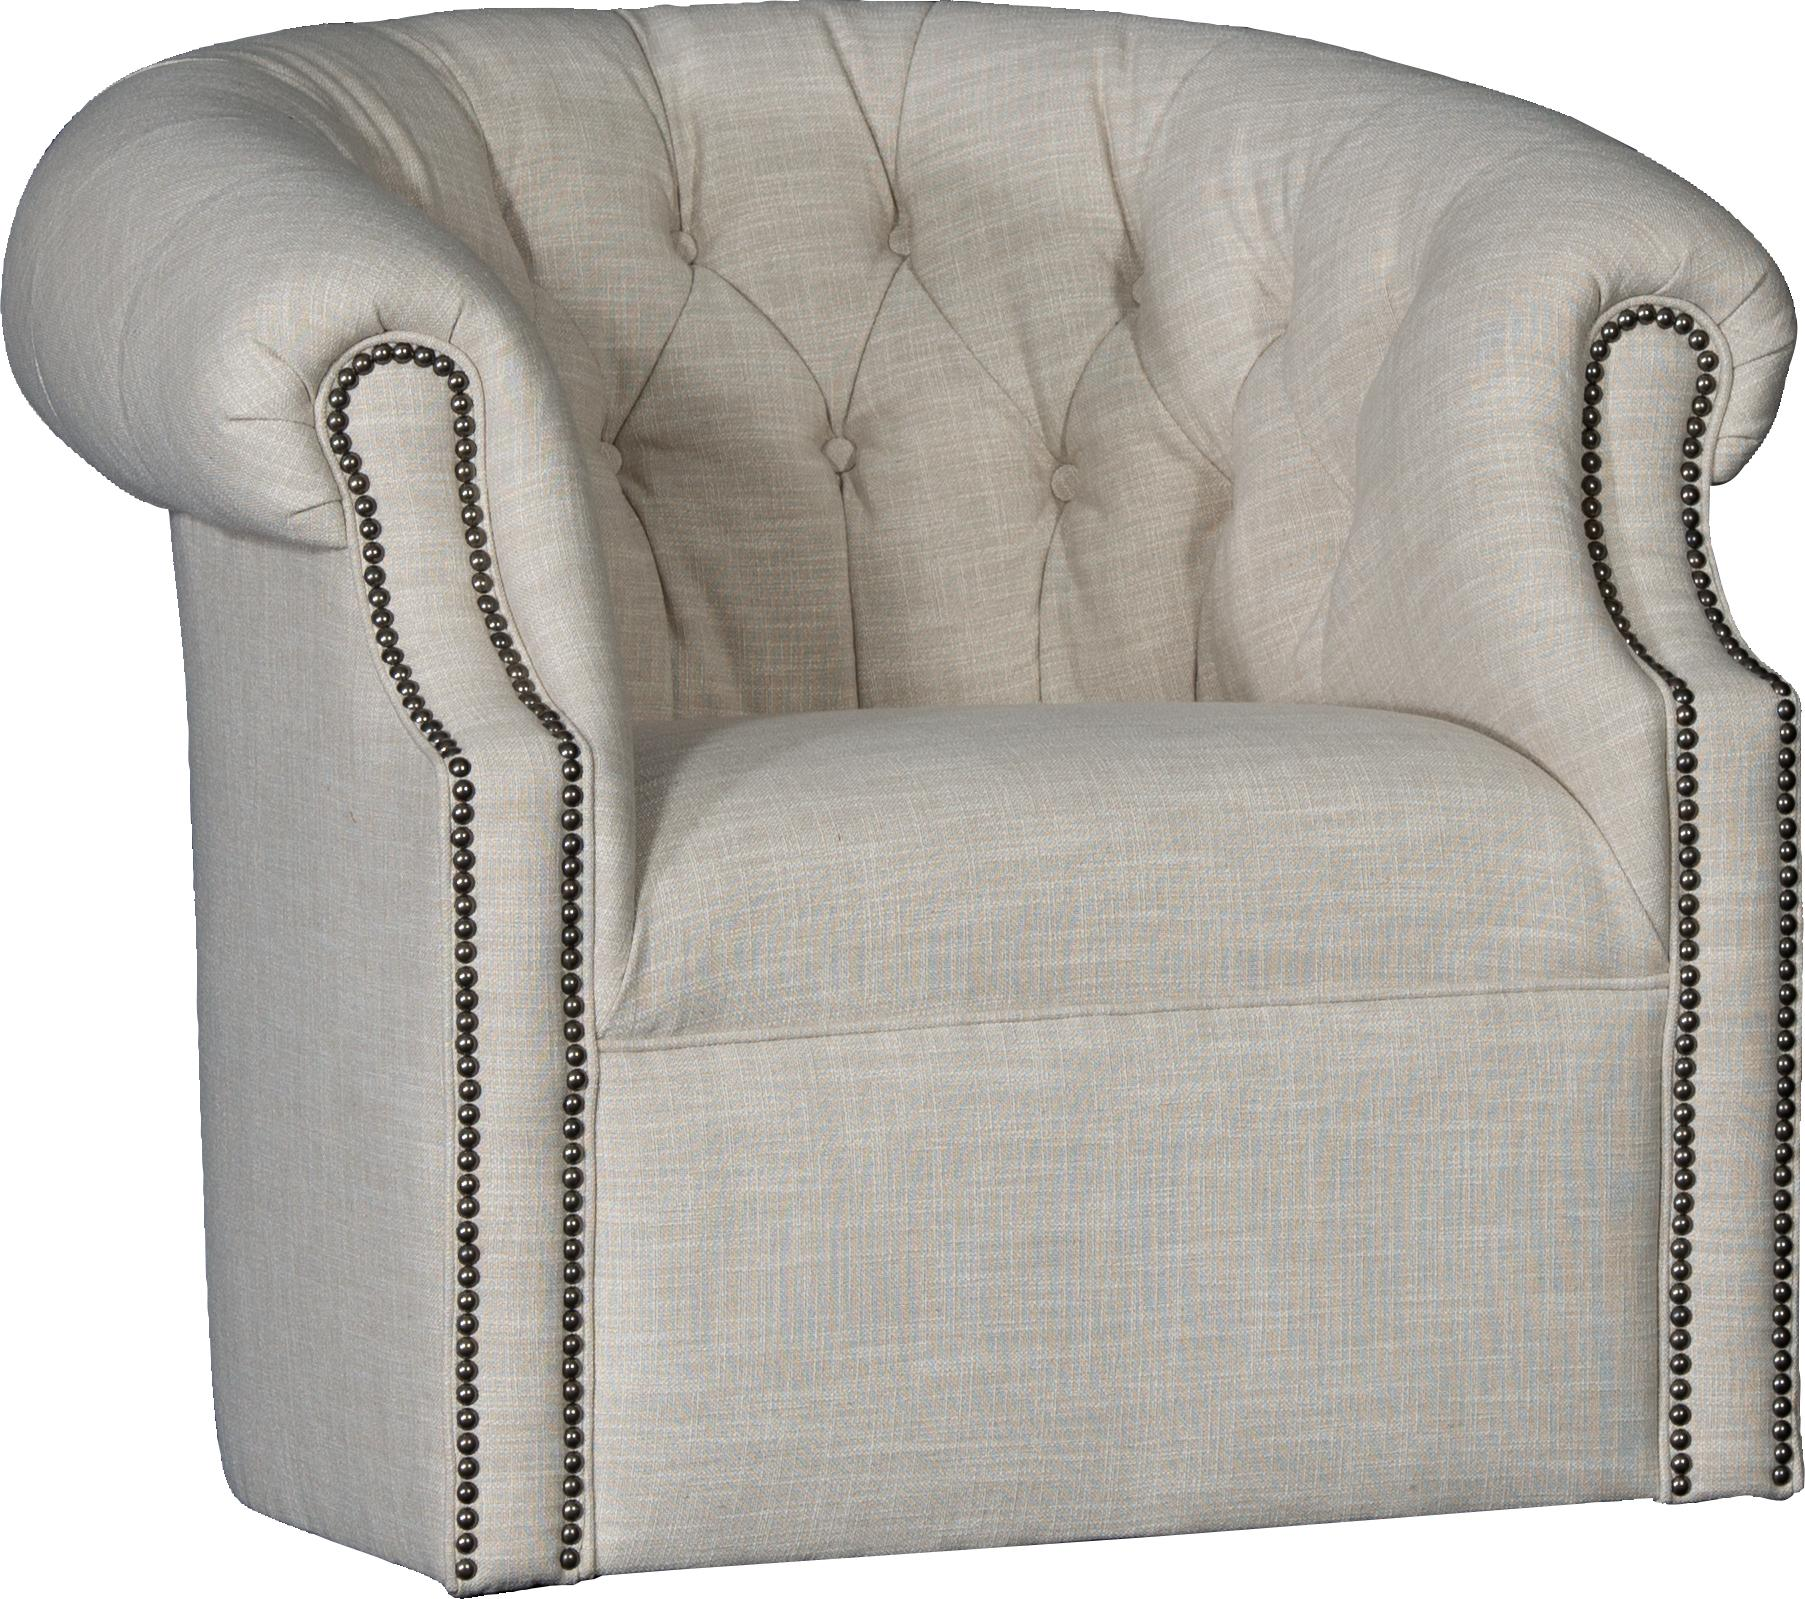 swivel tub chairs frank gehry cardboard mayo 8220 chair w tufted back olinde s furniture